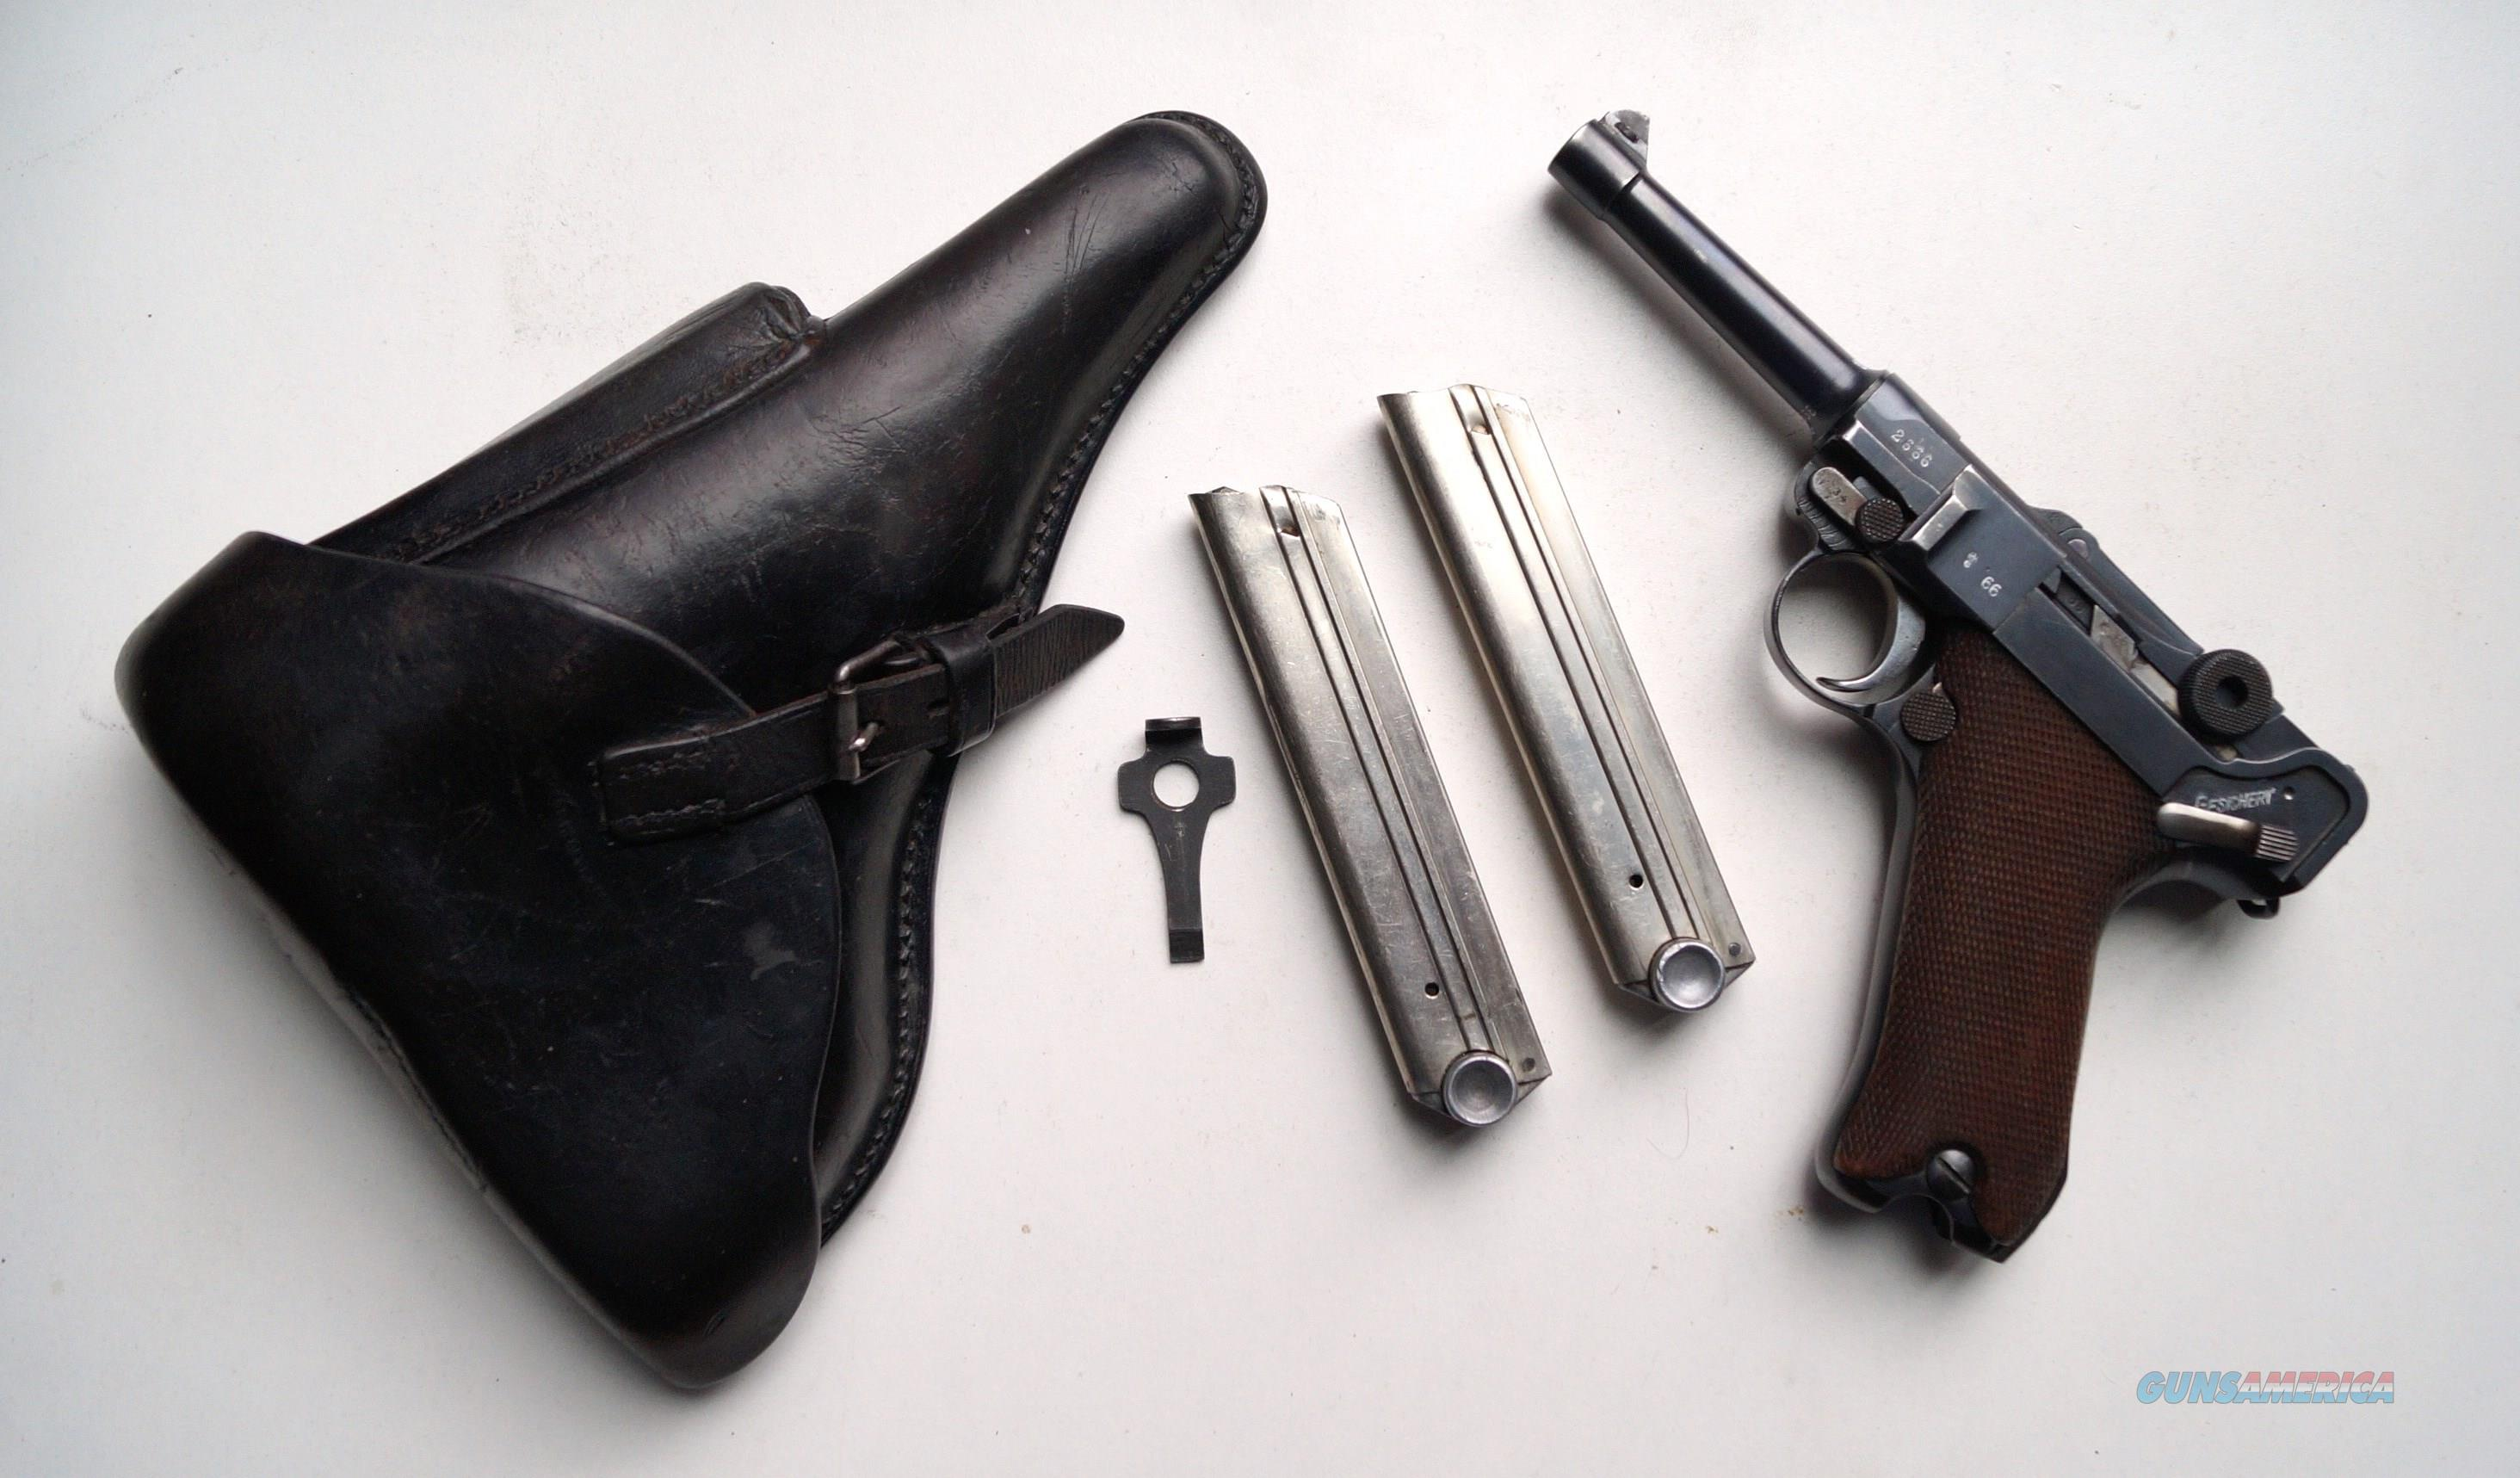 SIMSON / SUHL GERMAN LUGER RIG W/ 2 MATCHING # MAGAZINES  Guns > Pistols > Luger Pistols